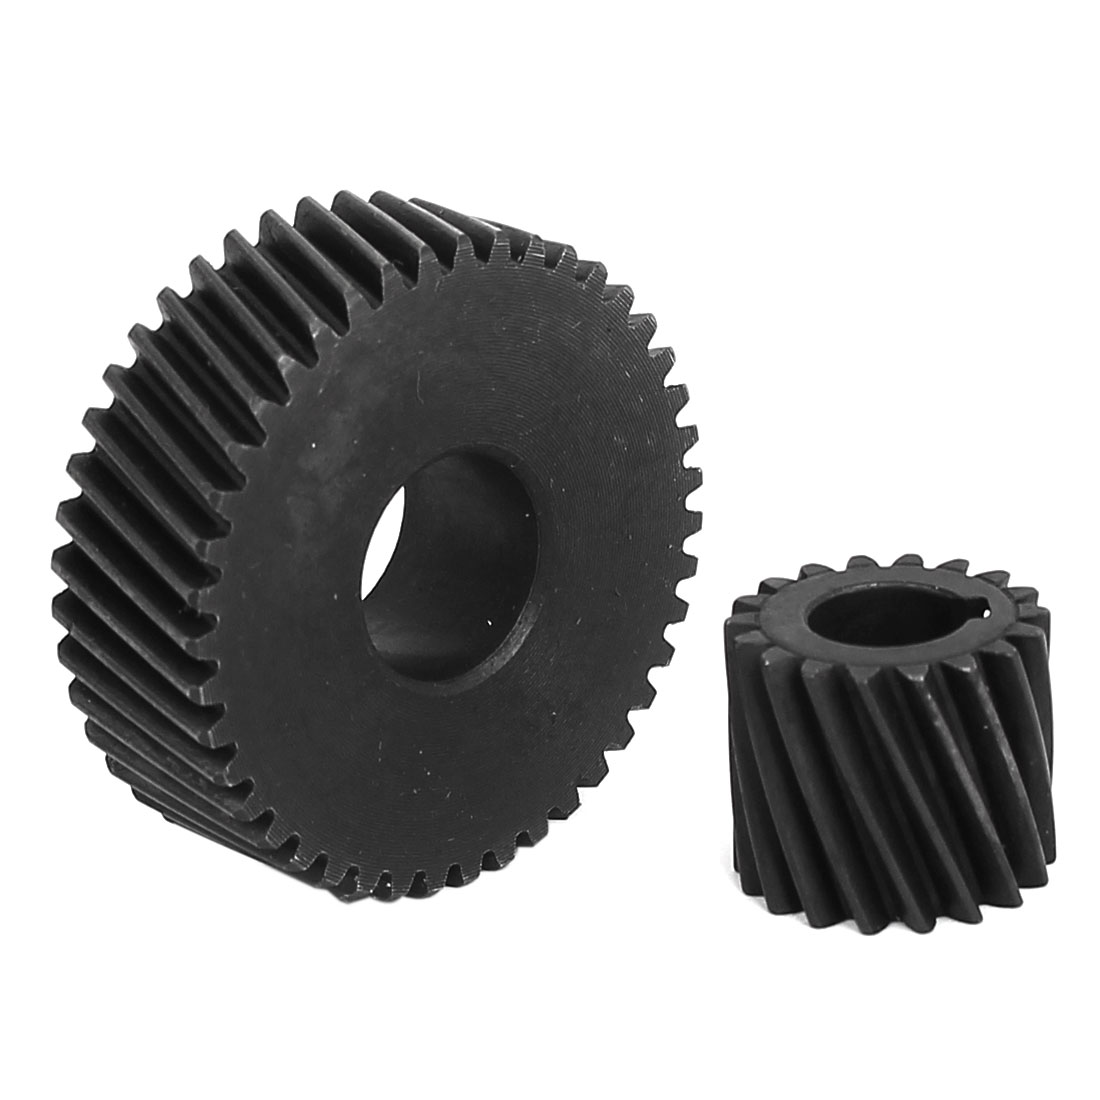 Spare Part Spiral Bevel Gear Pinion Set for CM4SB Marble Cutting Machine